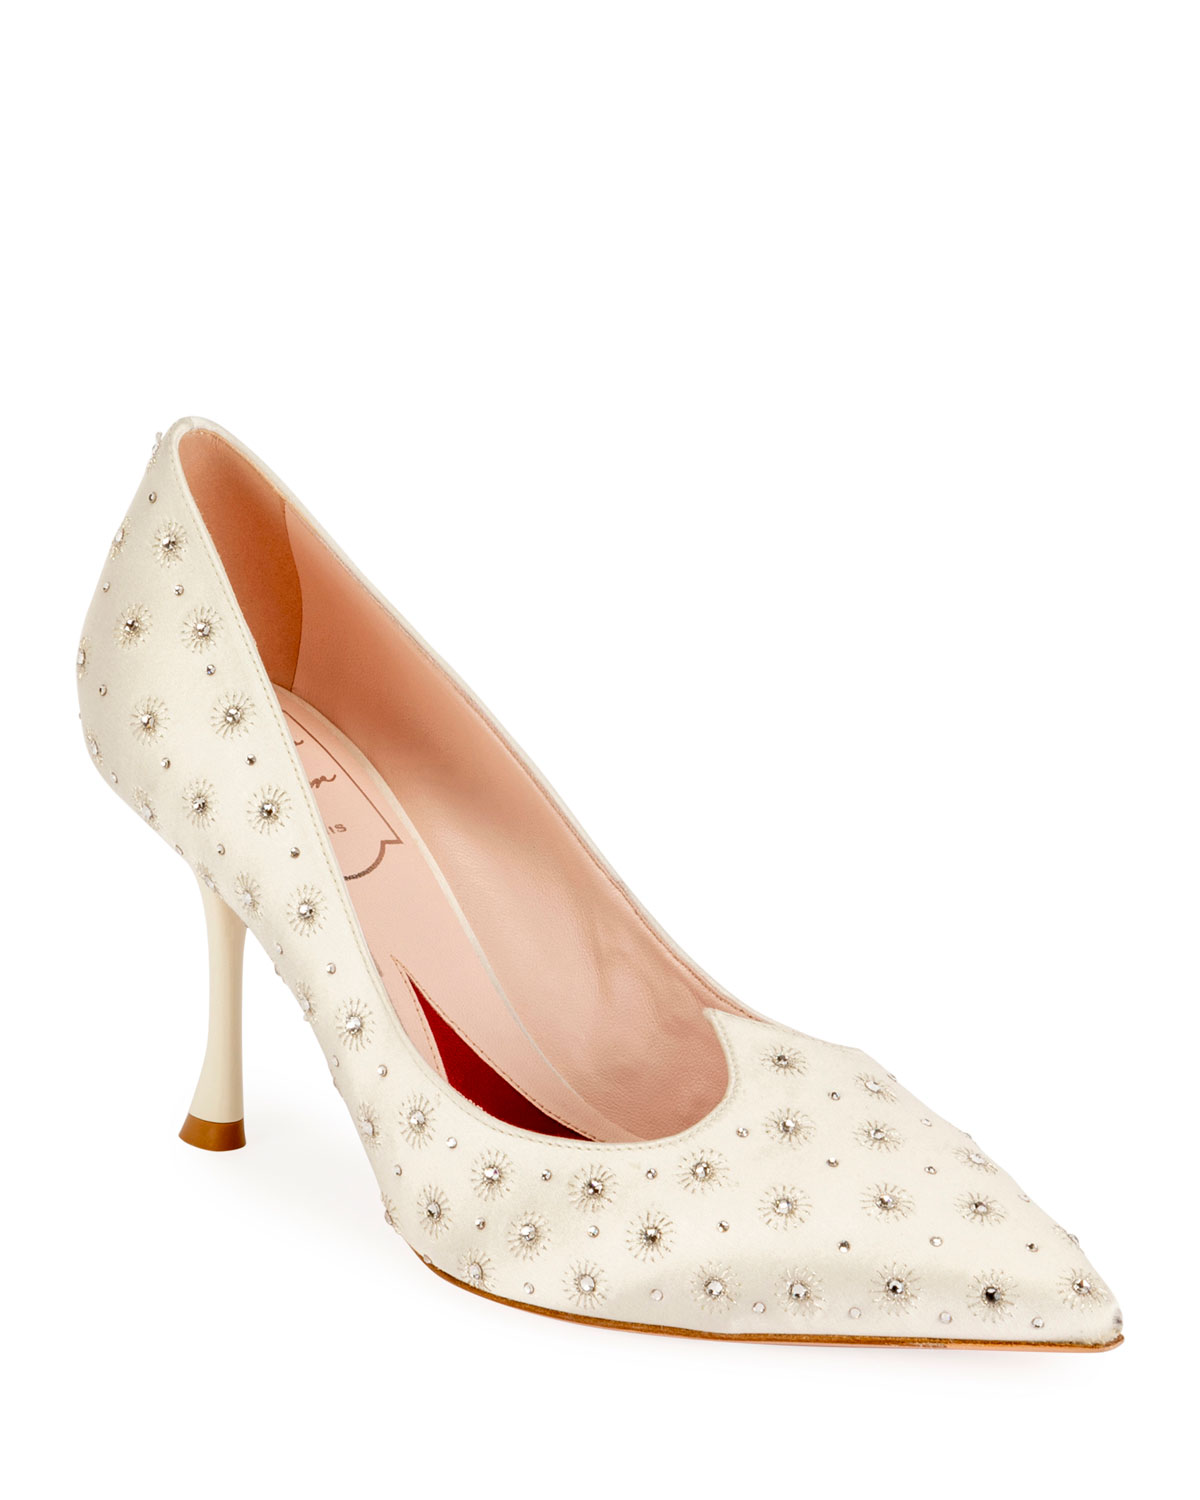 Roger Vivier Pumps I LOVE VIVIER HEART-SHAPE TWINKLE SATIN PUMPS